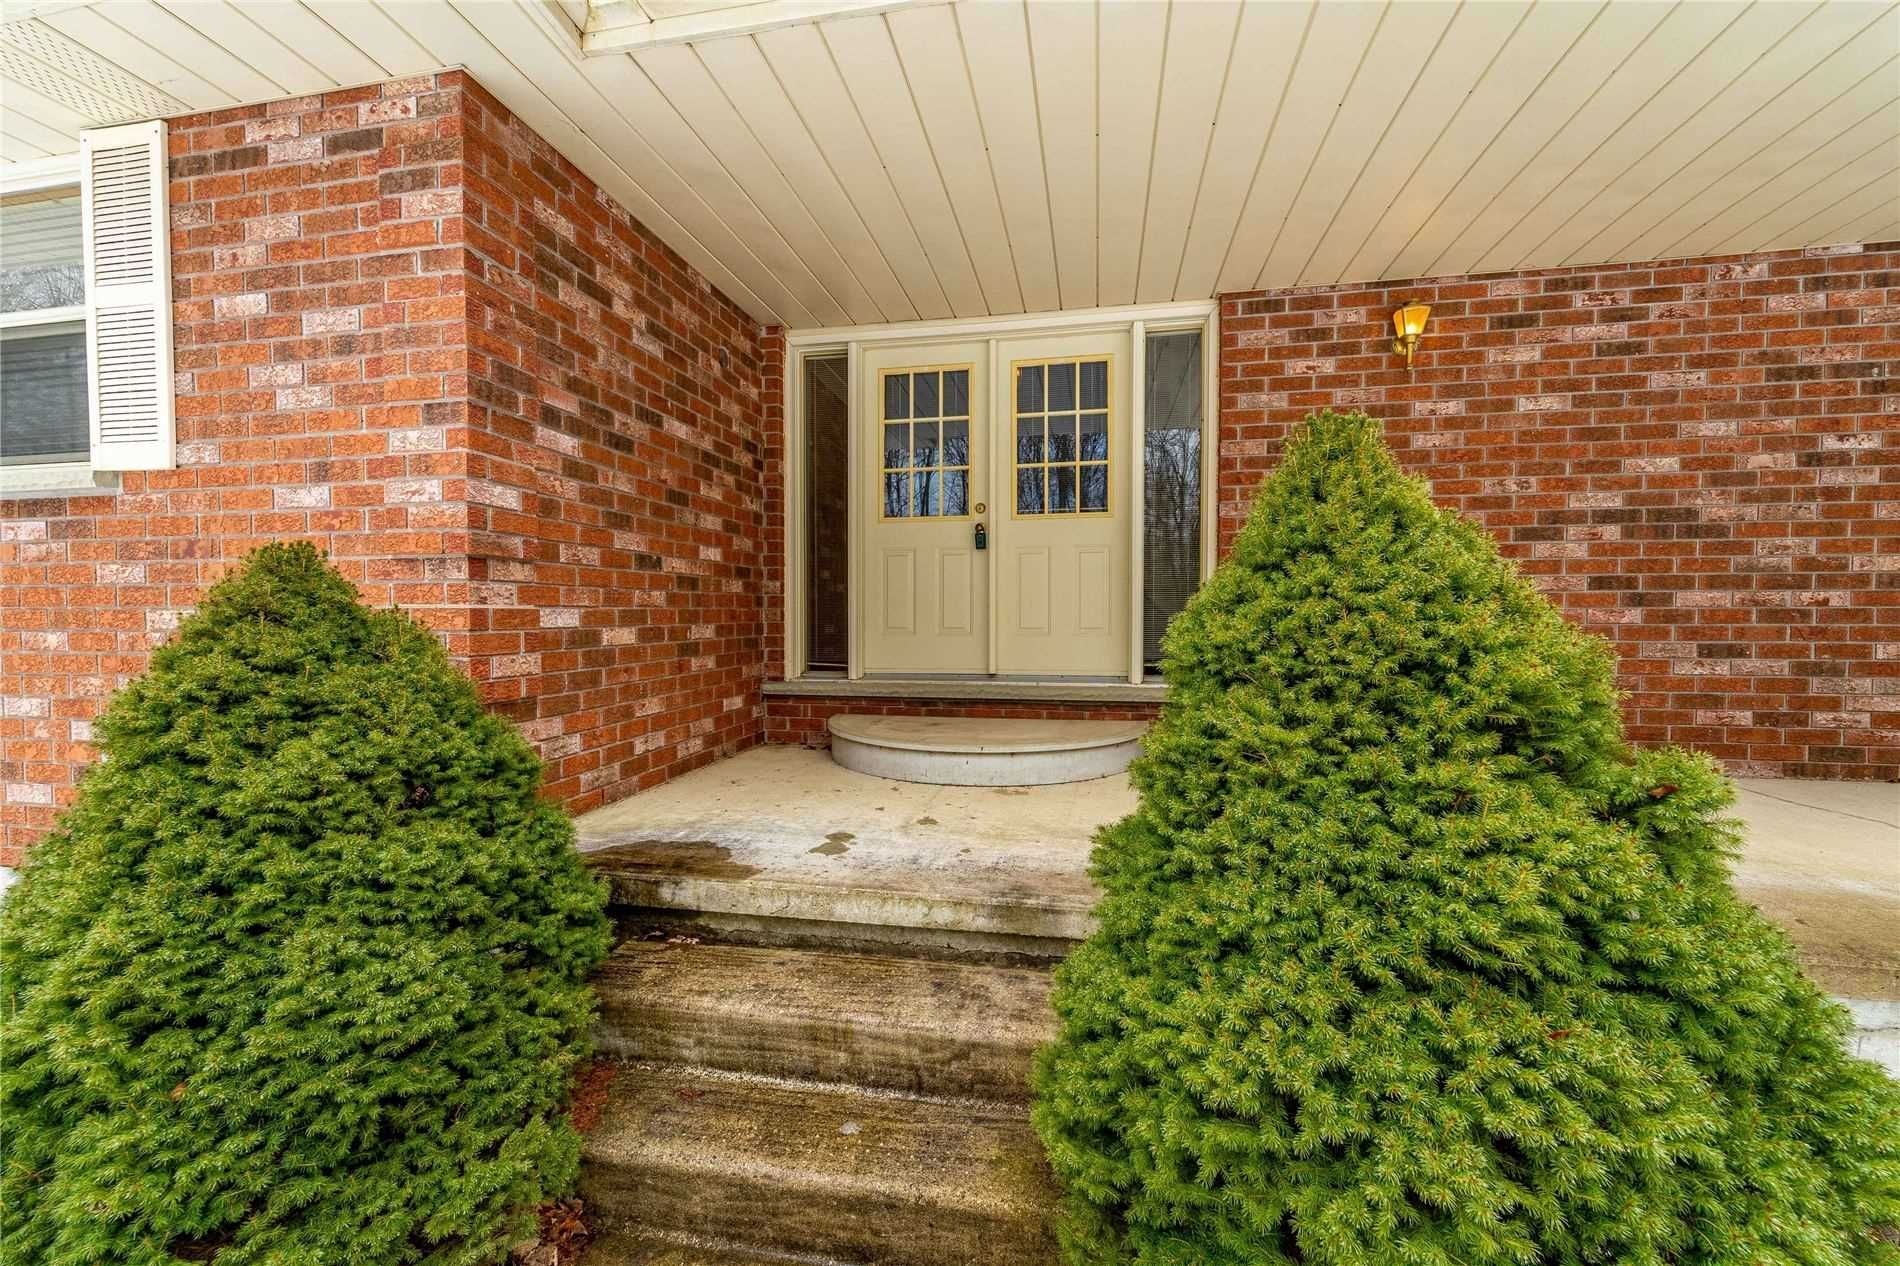 Photo 2: Photos: 918 Windham12 Road in Norfolk: Simcoe House (Bungalow) for sale : MLS®# X4707719